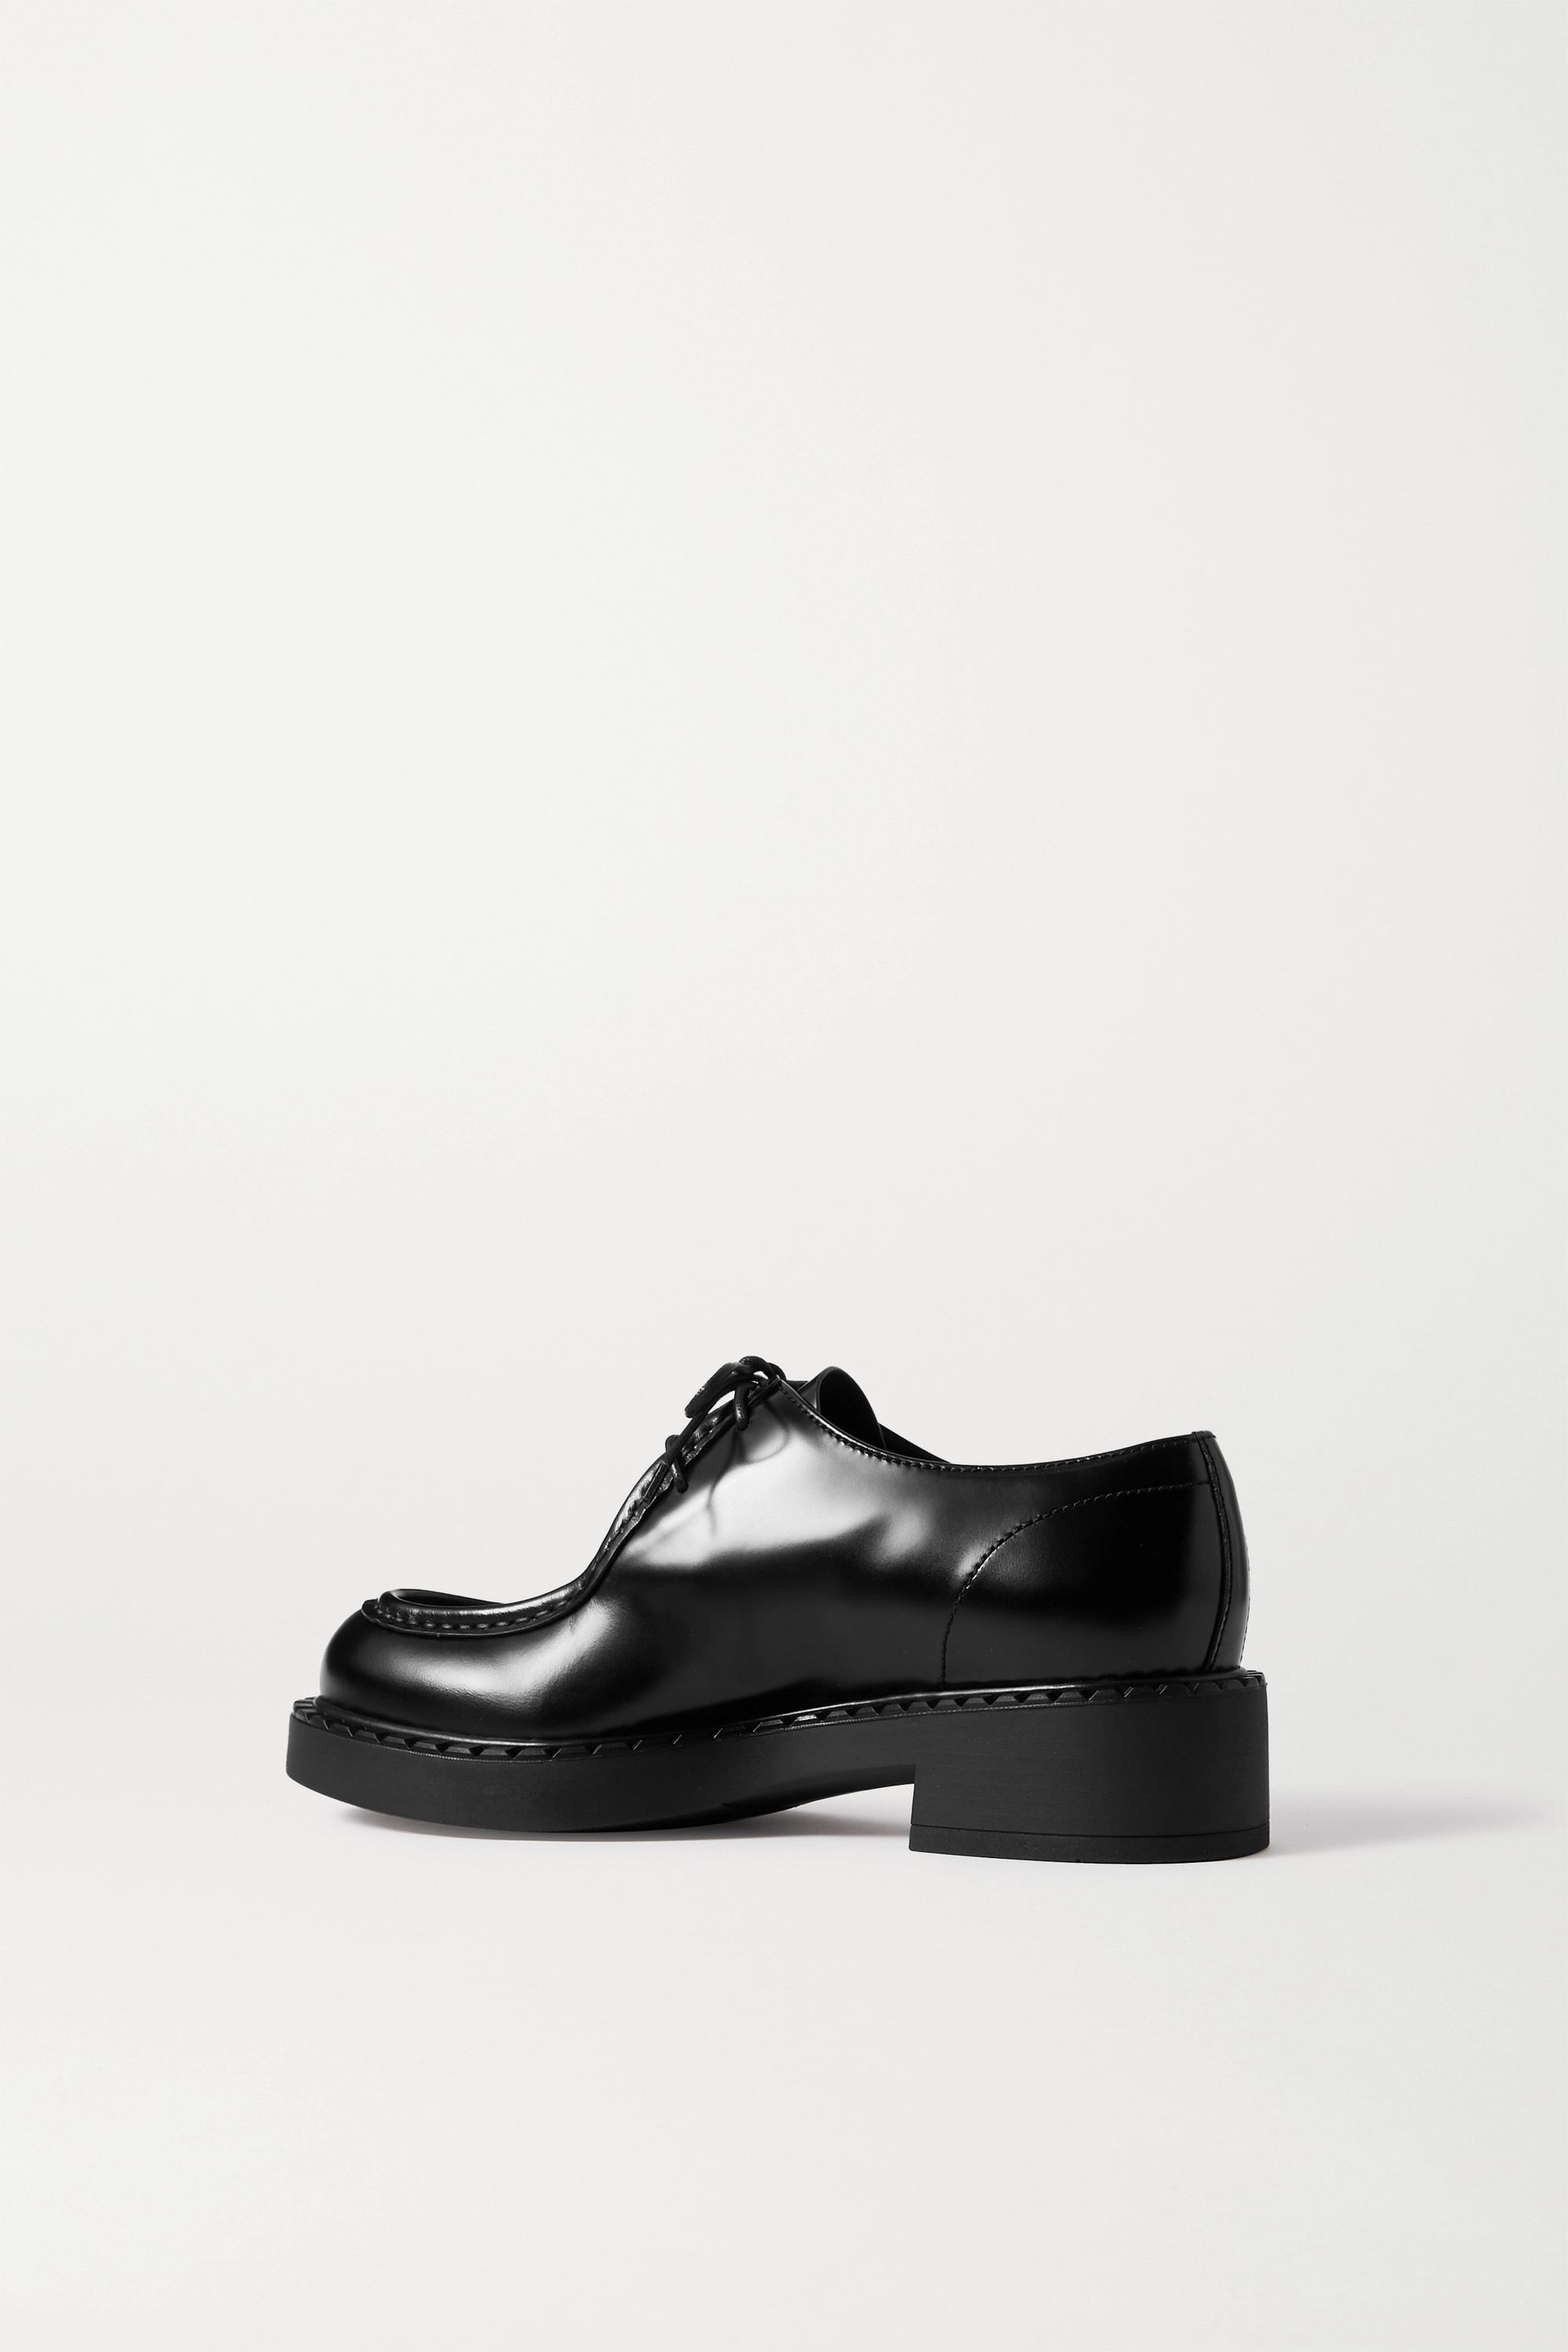 Prada 50 glossed-leather brogues